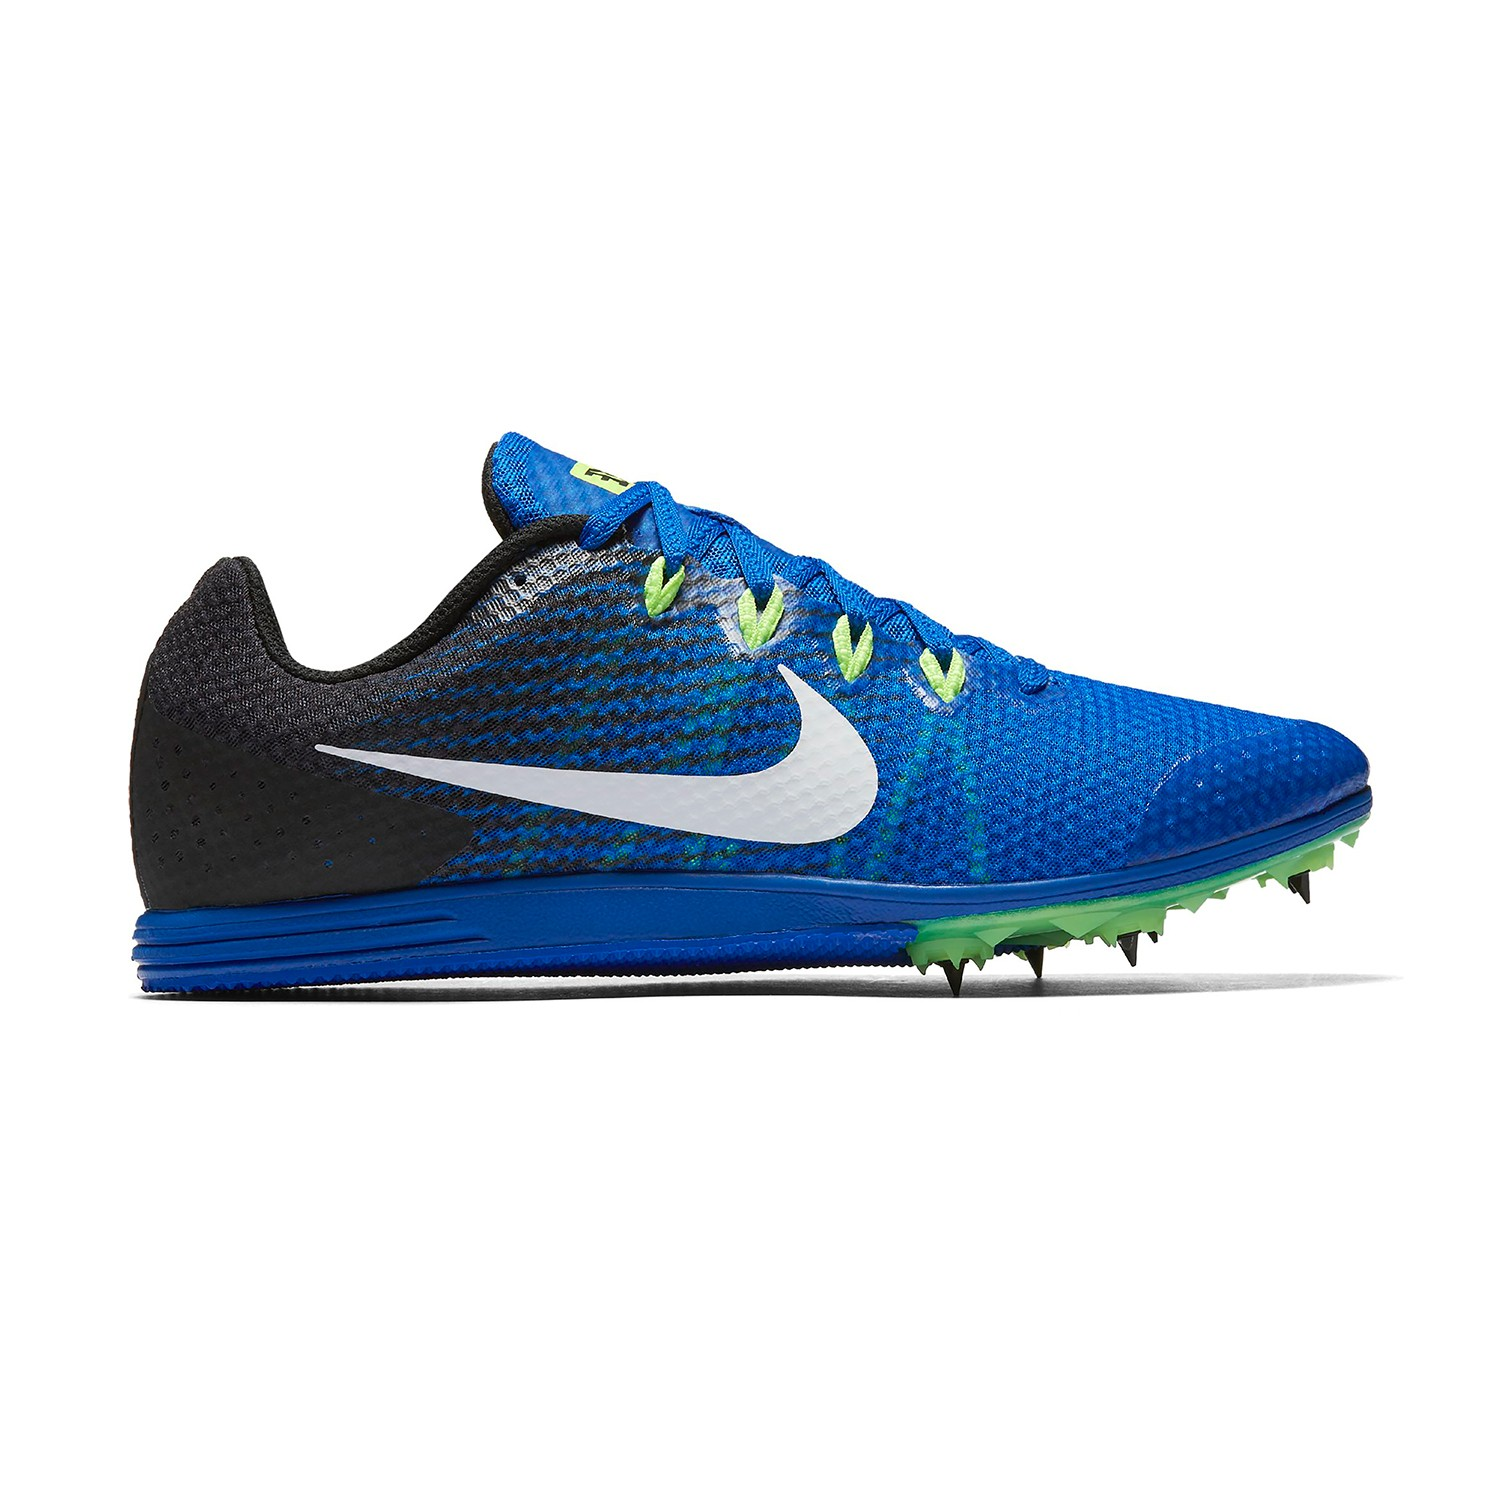 Nike Men's Zoom Rival D 9 Unisex Track Spike Shoe